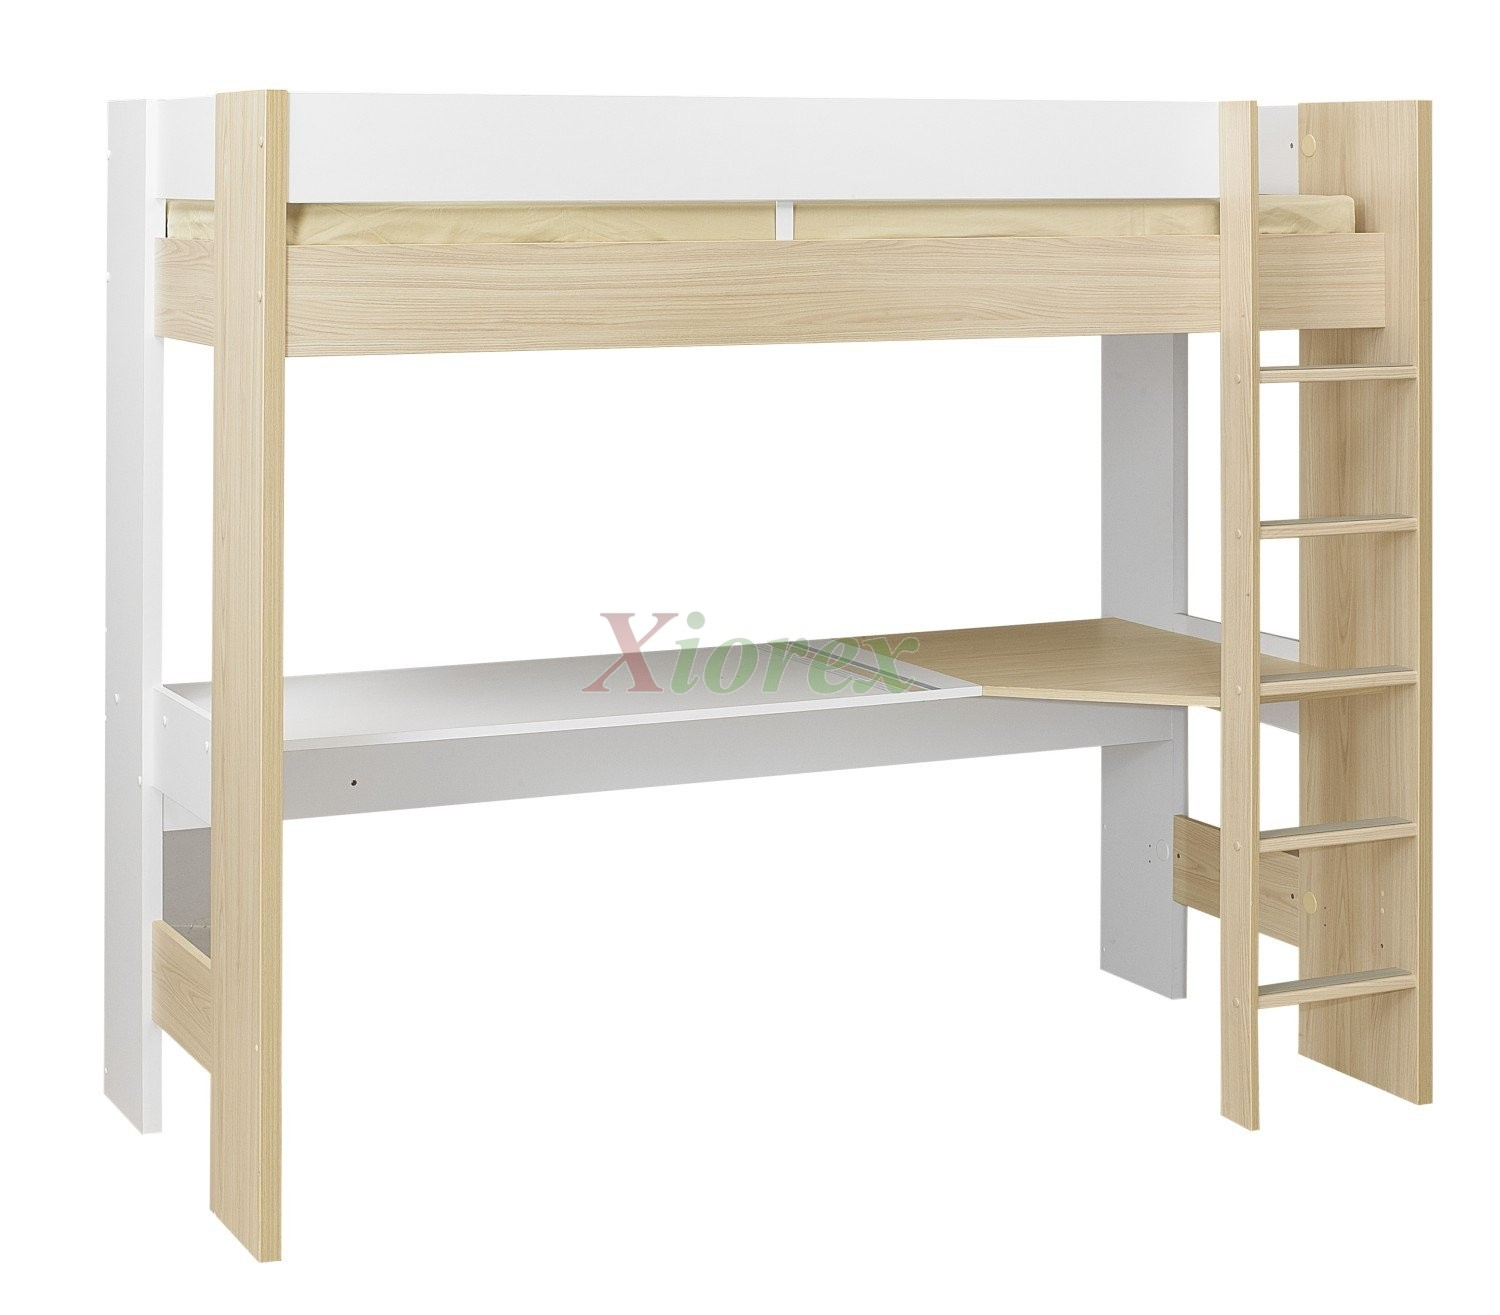 Bunk Bed Sets Gami Titouan Bunk Bed Sets For Boys